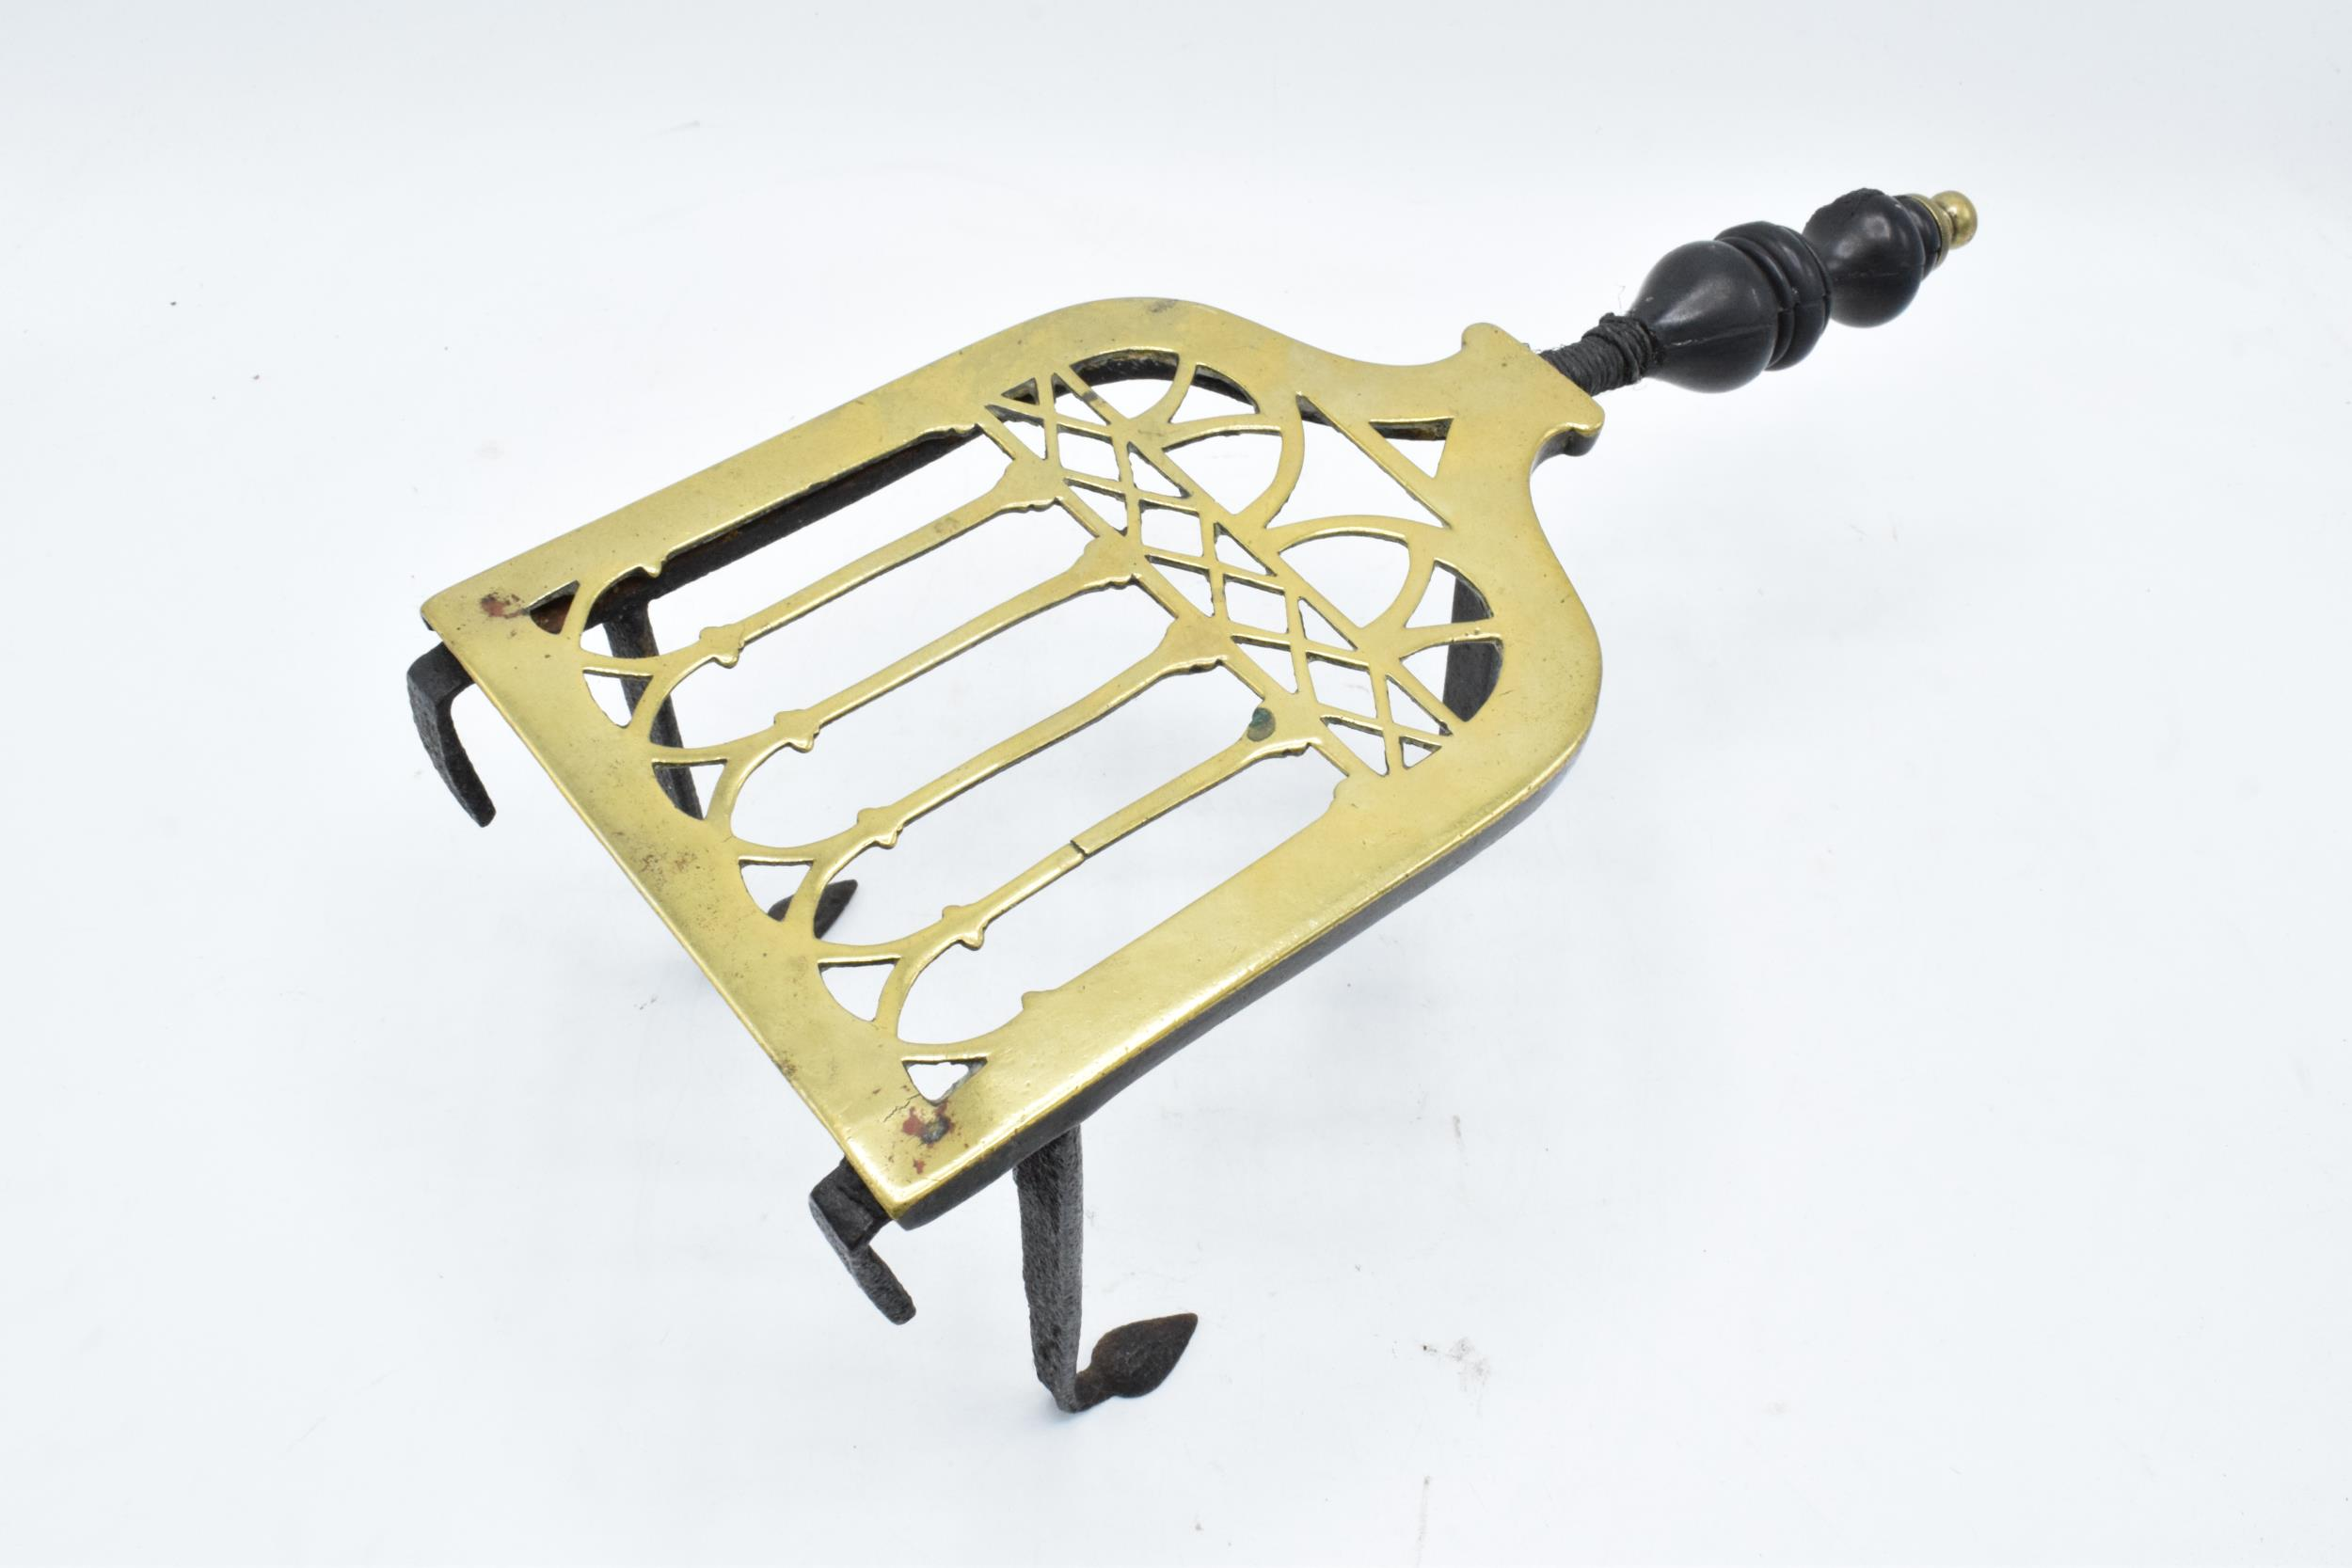 Victorian brass and iron trivet with wooden handle (some chipping to wood). - Image 2 of 6